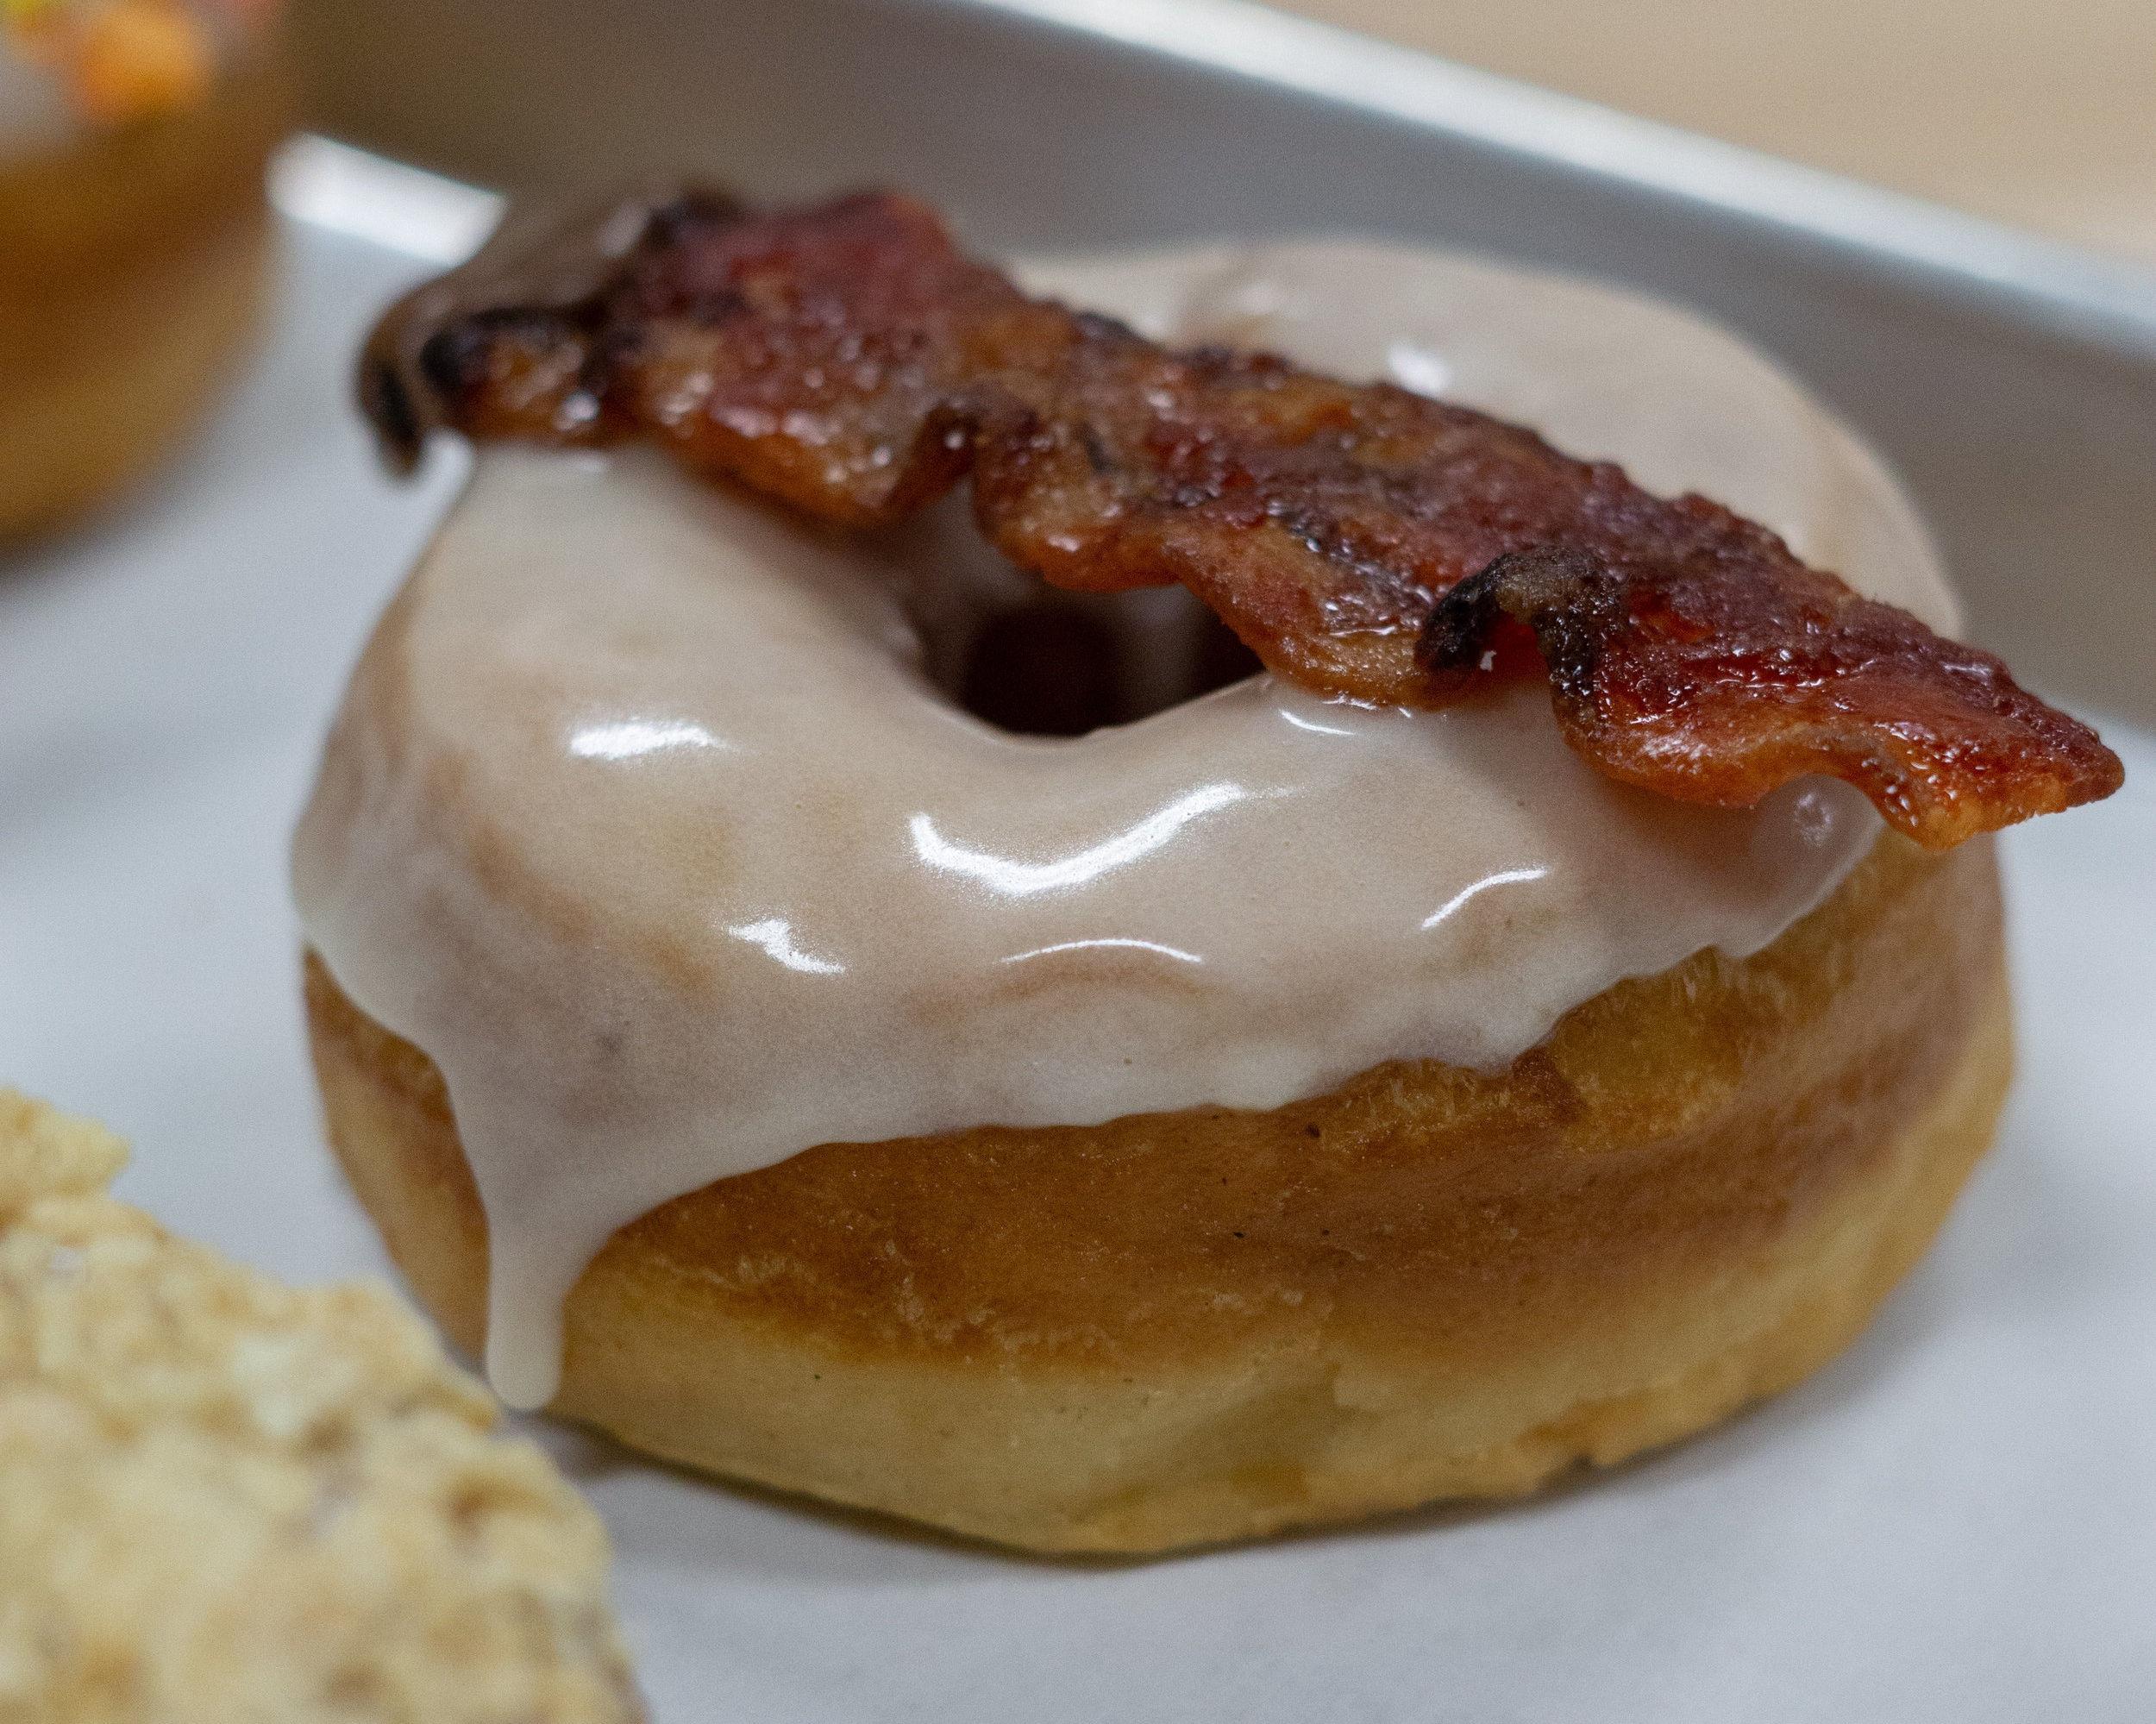 "D Magazine: Head to Dough Boy Donuts for the Maple Donut - ""Their doughnuts are excellent. The doughnut itself is thicker and larger than most. They've got heft, yet still remain airy and soft…"""